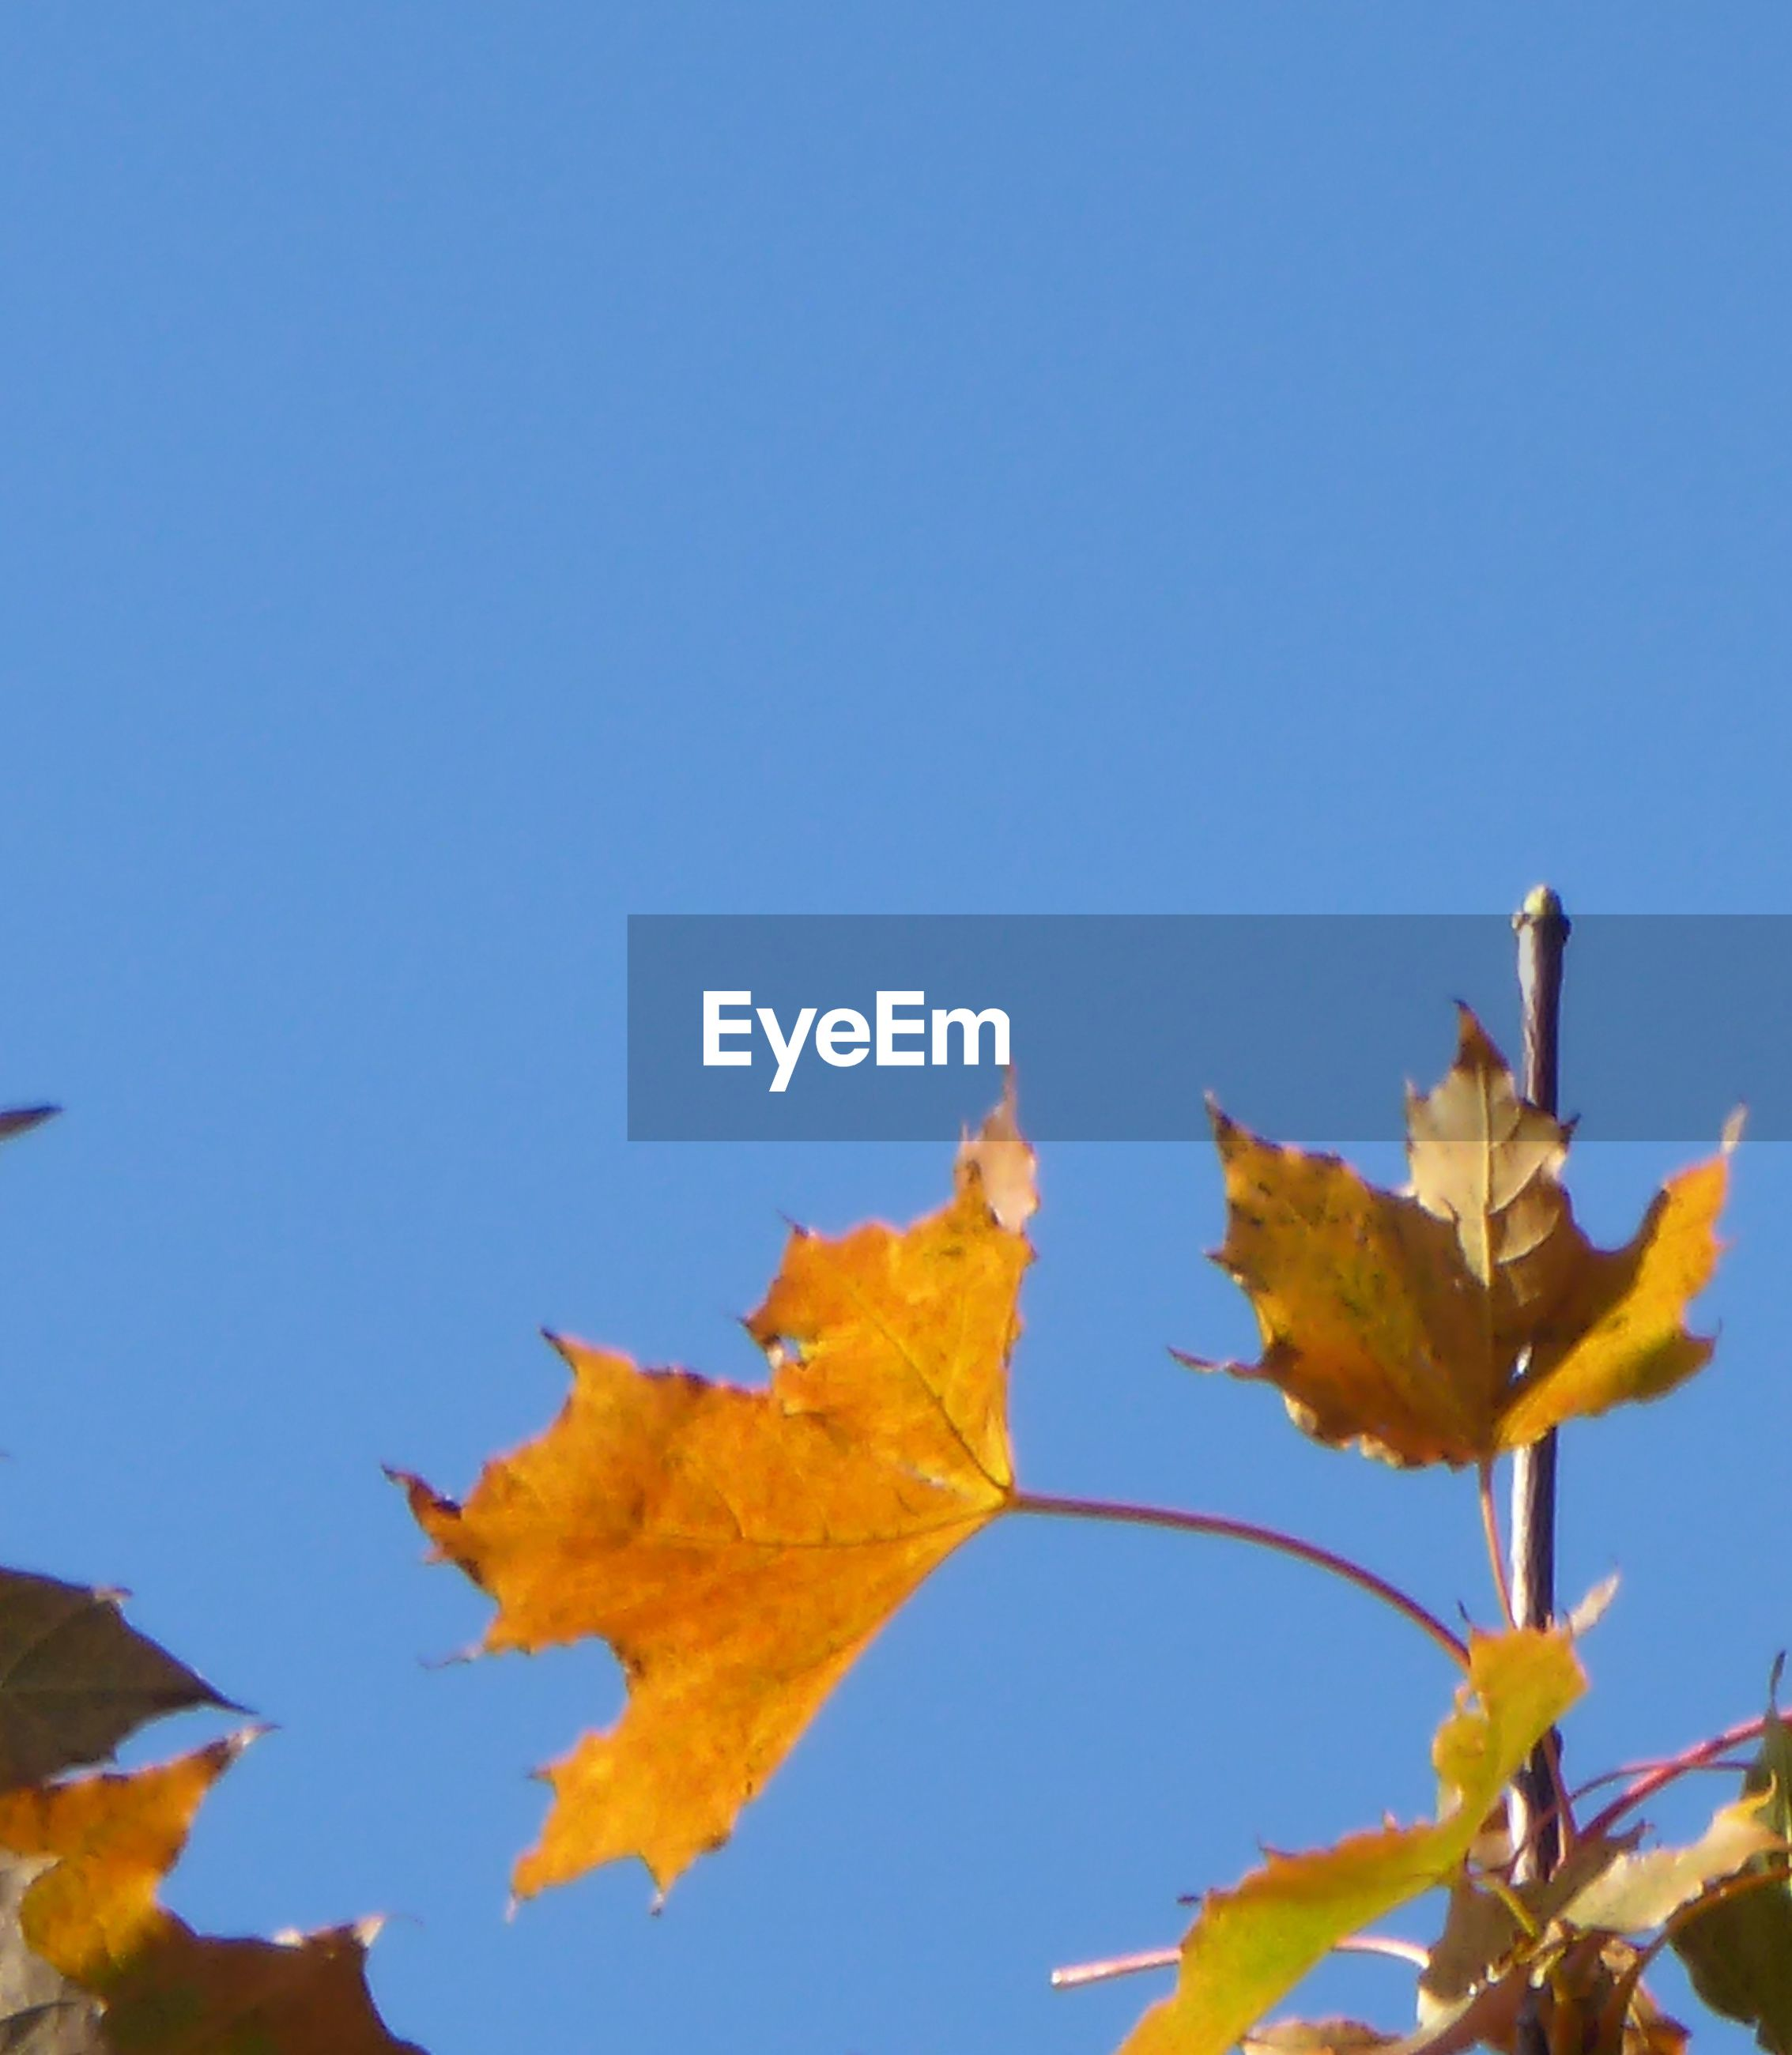 leaf, autumn, change, clear sky, nature, maple, blue, day, maple leaf, outdoors, low angle view, no people, beauty in nature, close-up, fragility, sky